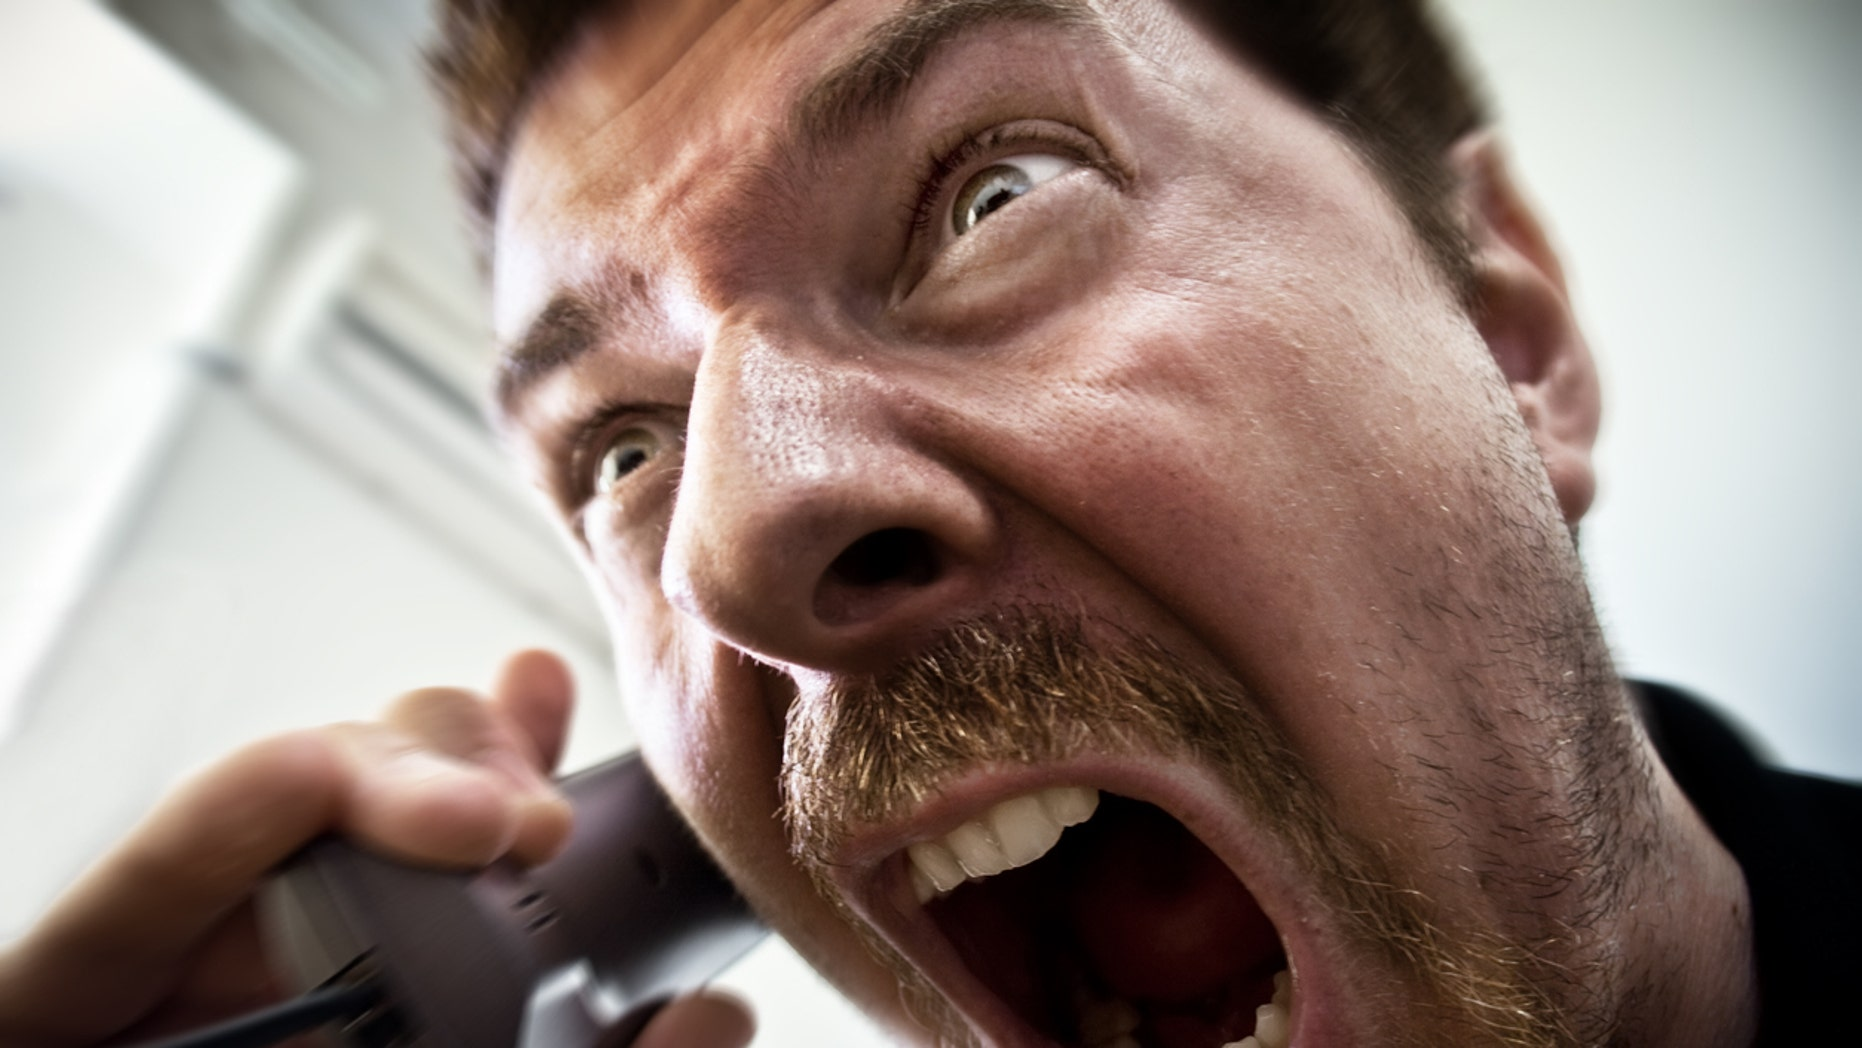 Extreme angry man shouting at the phone